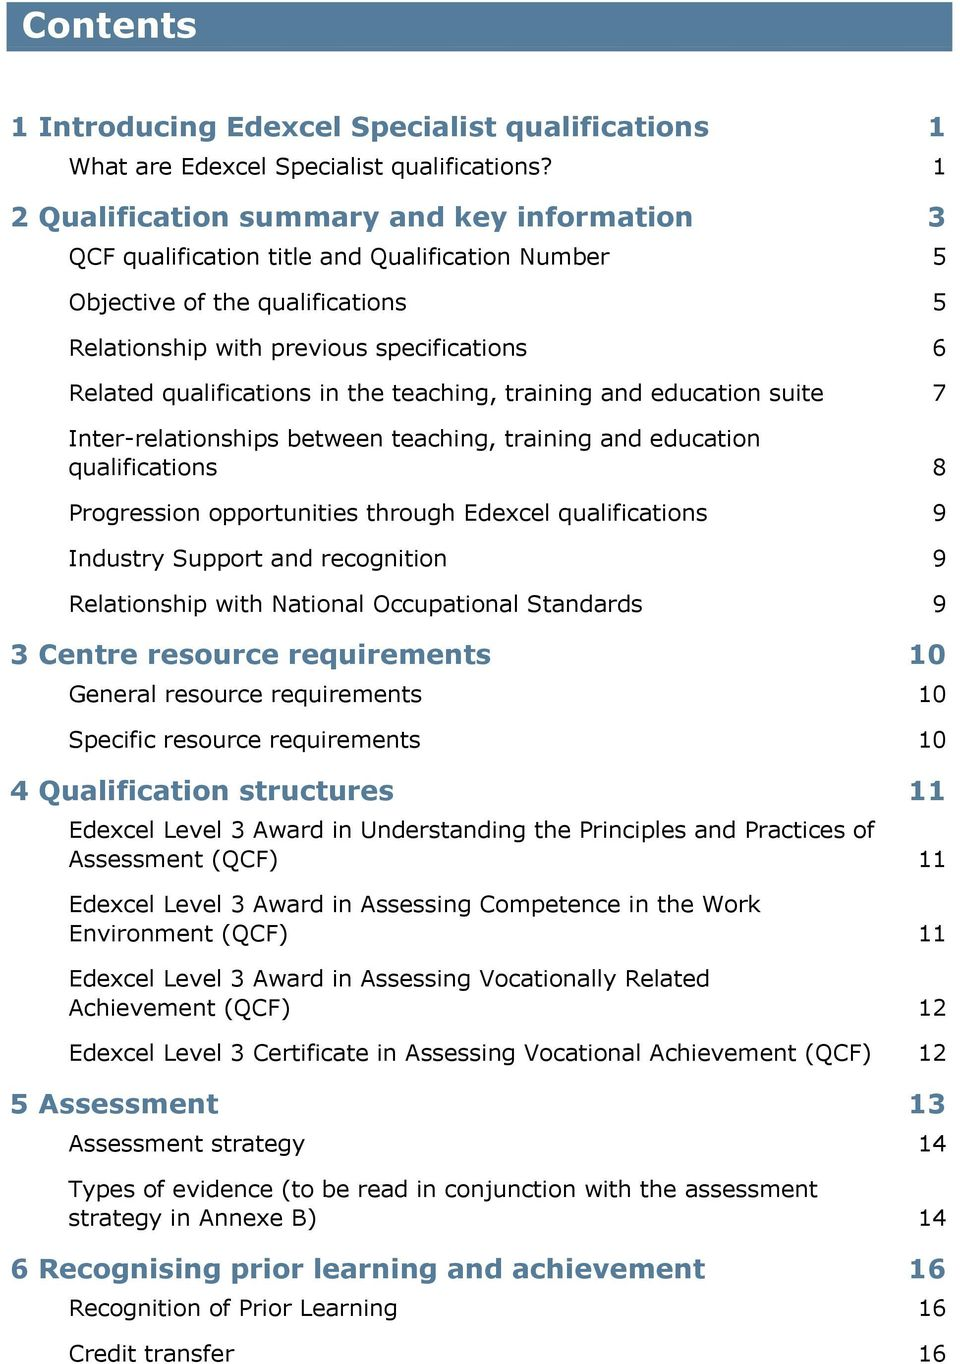 edexcel level 3 awards and certificate in assessing the quality of in the teaching training and education suite 7 inter relationships between teaching training